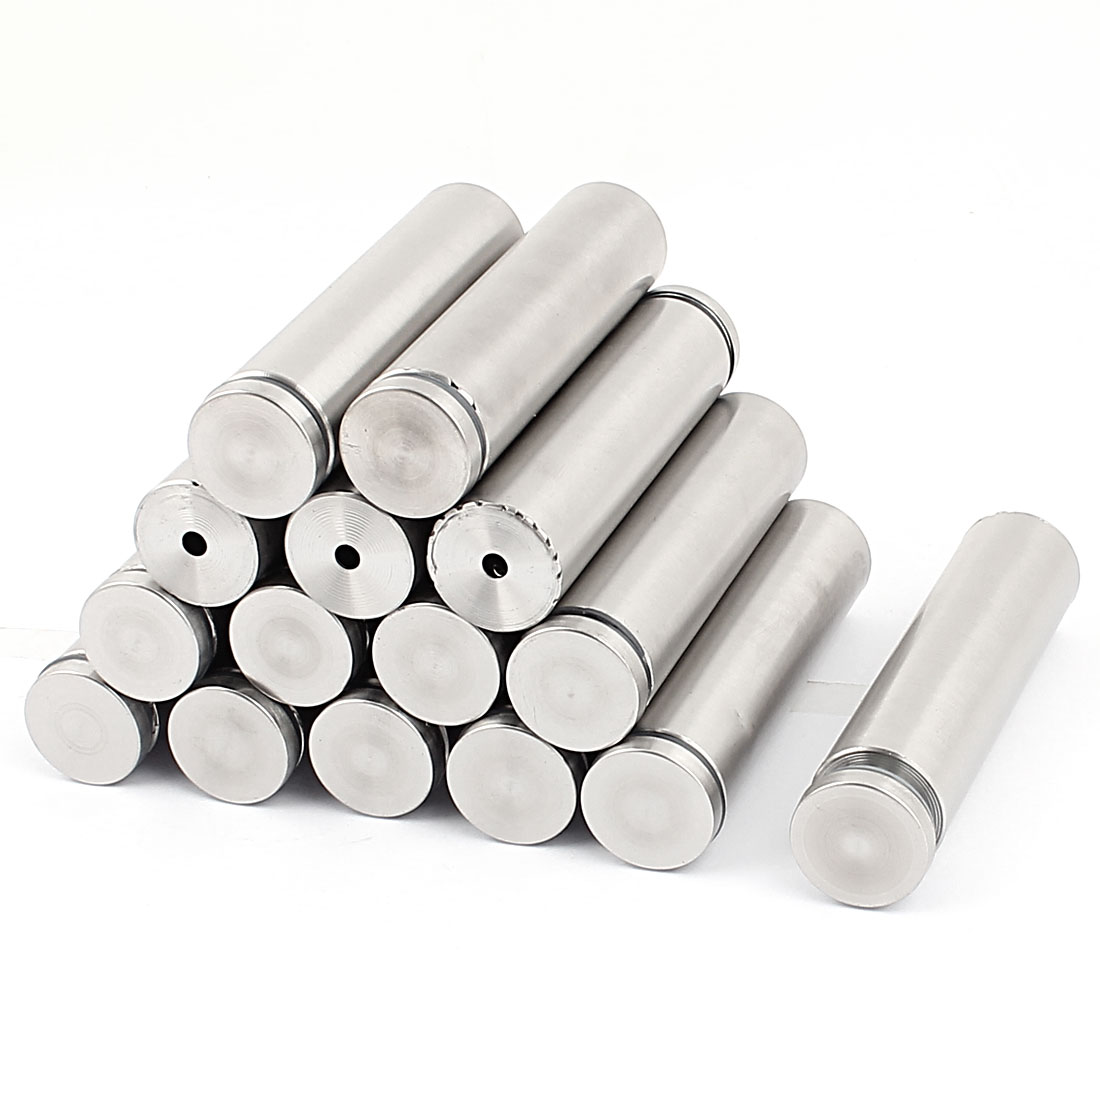 15 Pcs 25mm x 100mm Silver Tone Stainless Steel Standoff Hardware for Glass